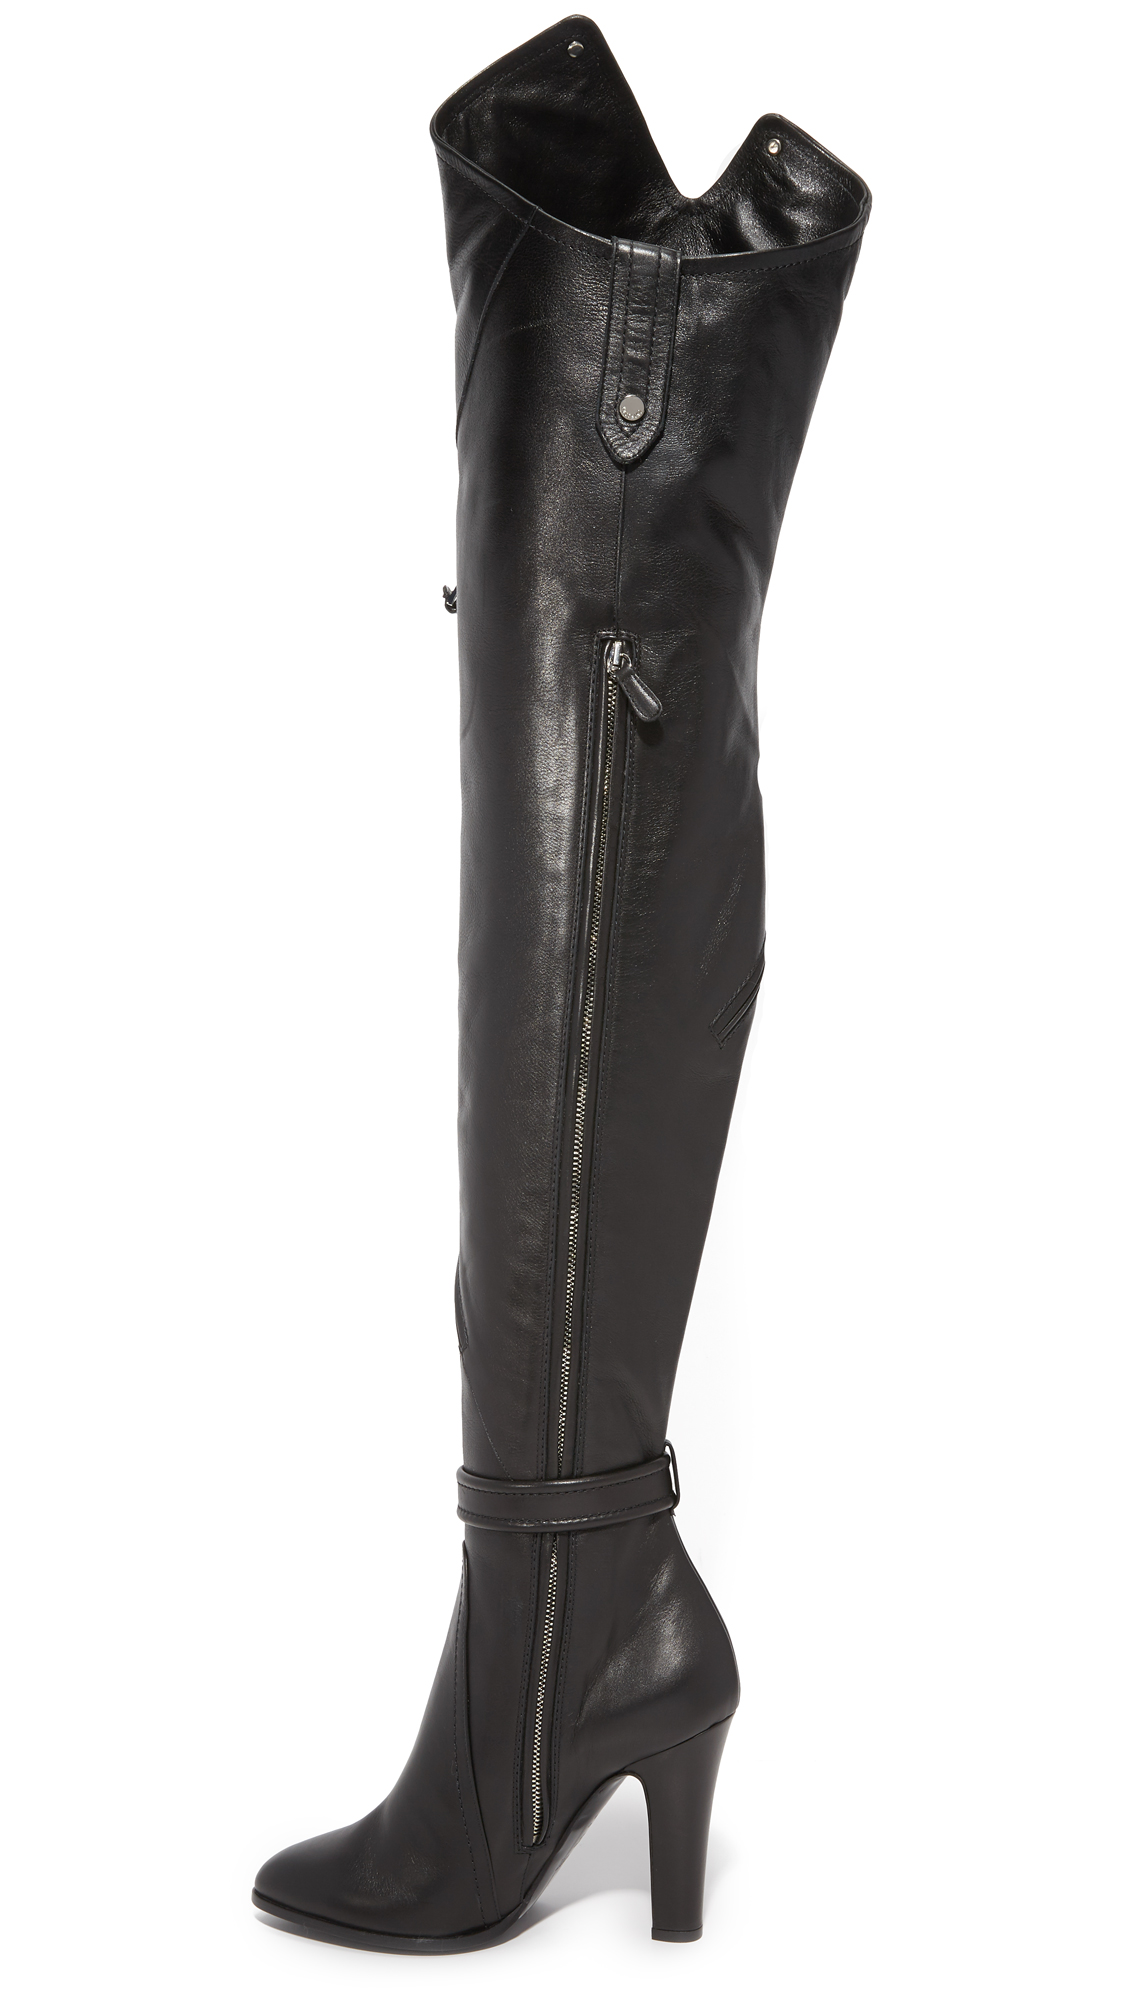 c0b3591c98 Moschino Over the Knee Boots | SHOPBOP